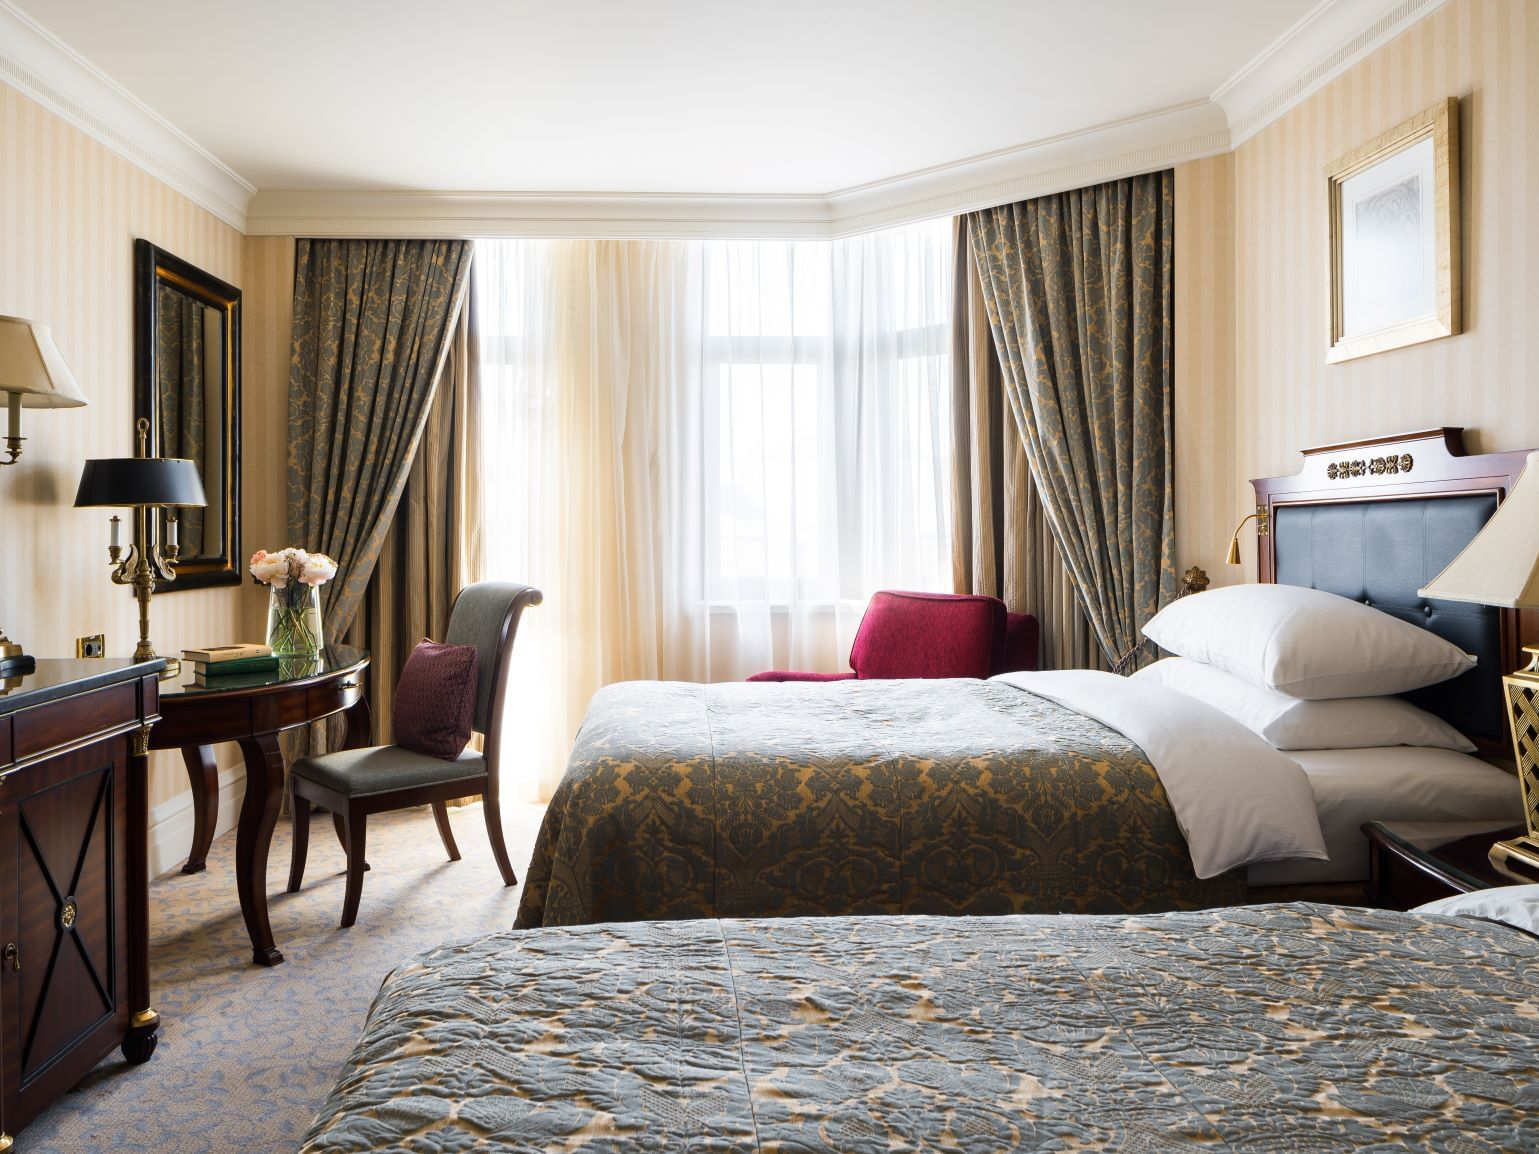 Leisure Classic room in Intercontinental Kyiv hotel